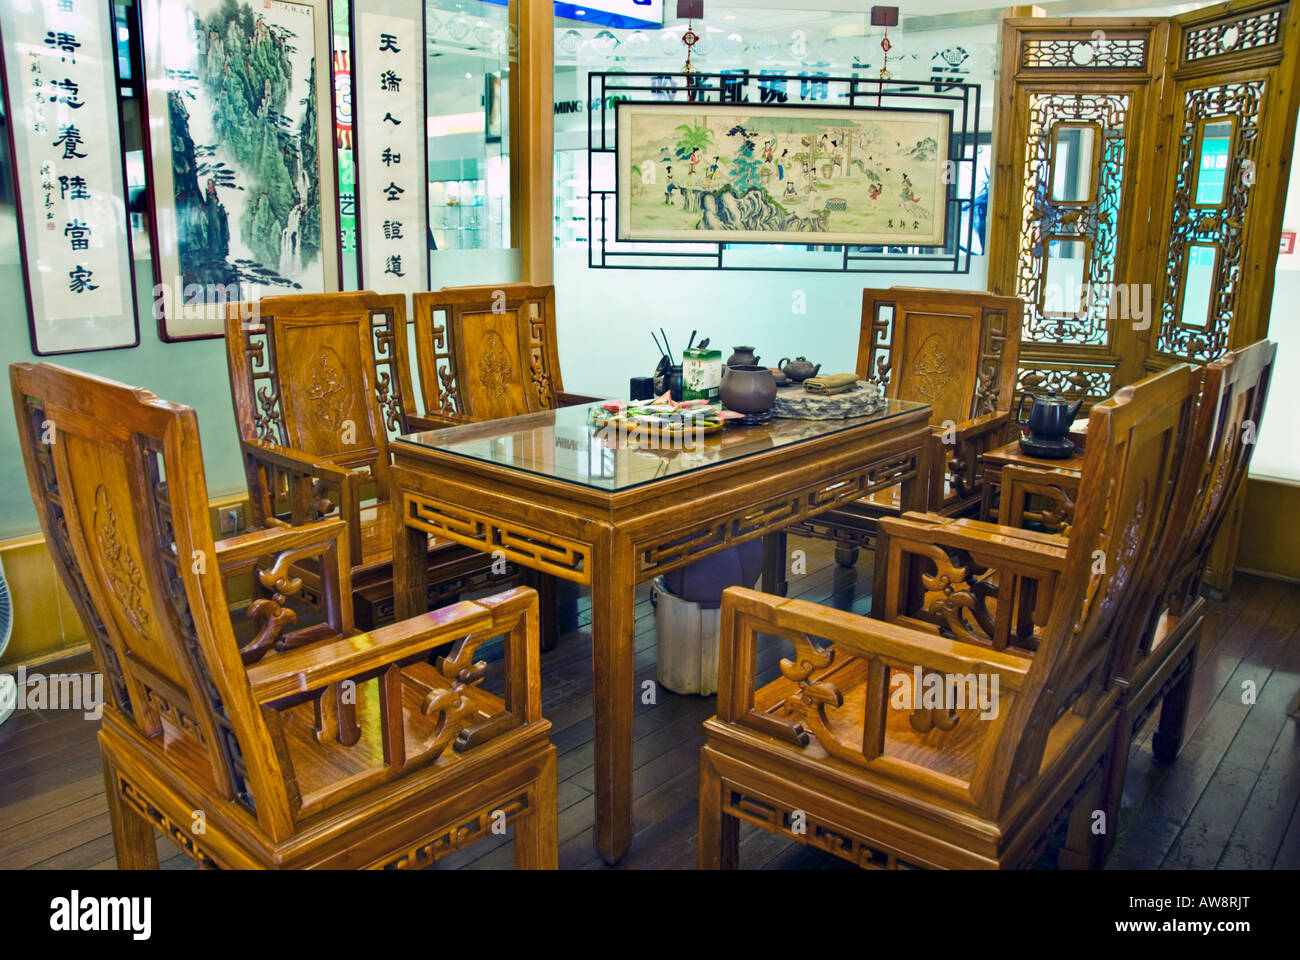 Beijing China Traditional Wooden Furniture In Tasting Area For Stock Photo Royalty Free Image